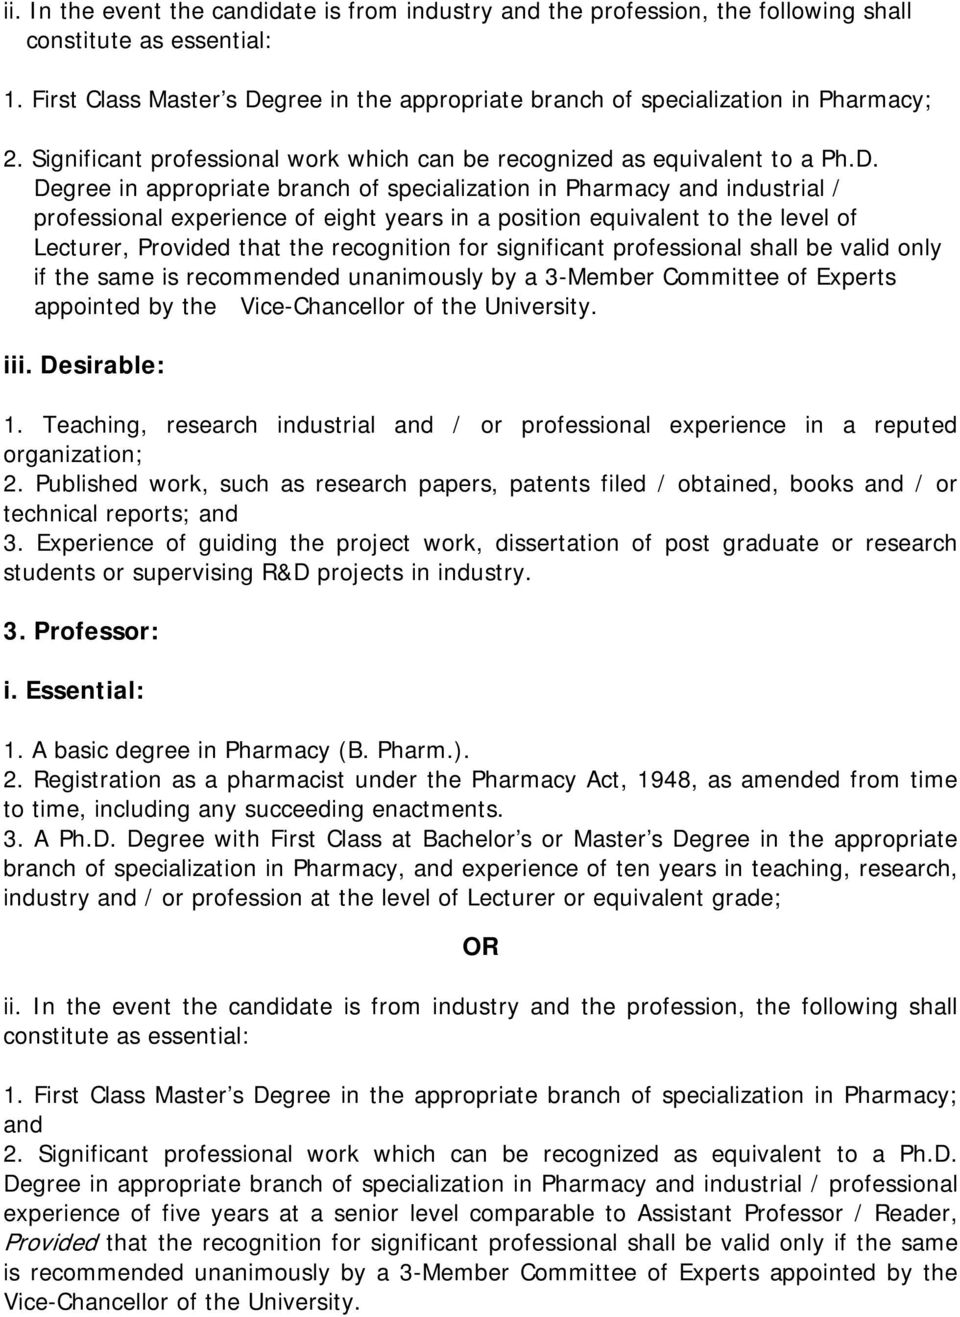 gree in the appropriate branch of specialization in Pharmacy; 2. Significant professional work which can be recognized as equivalent to a Ph.D.